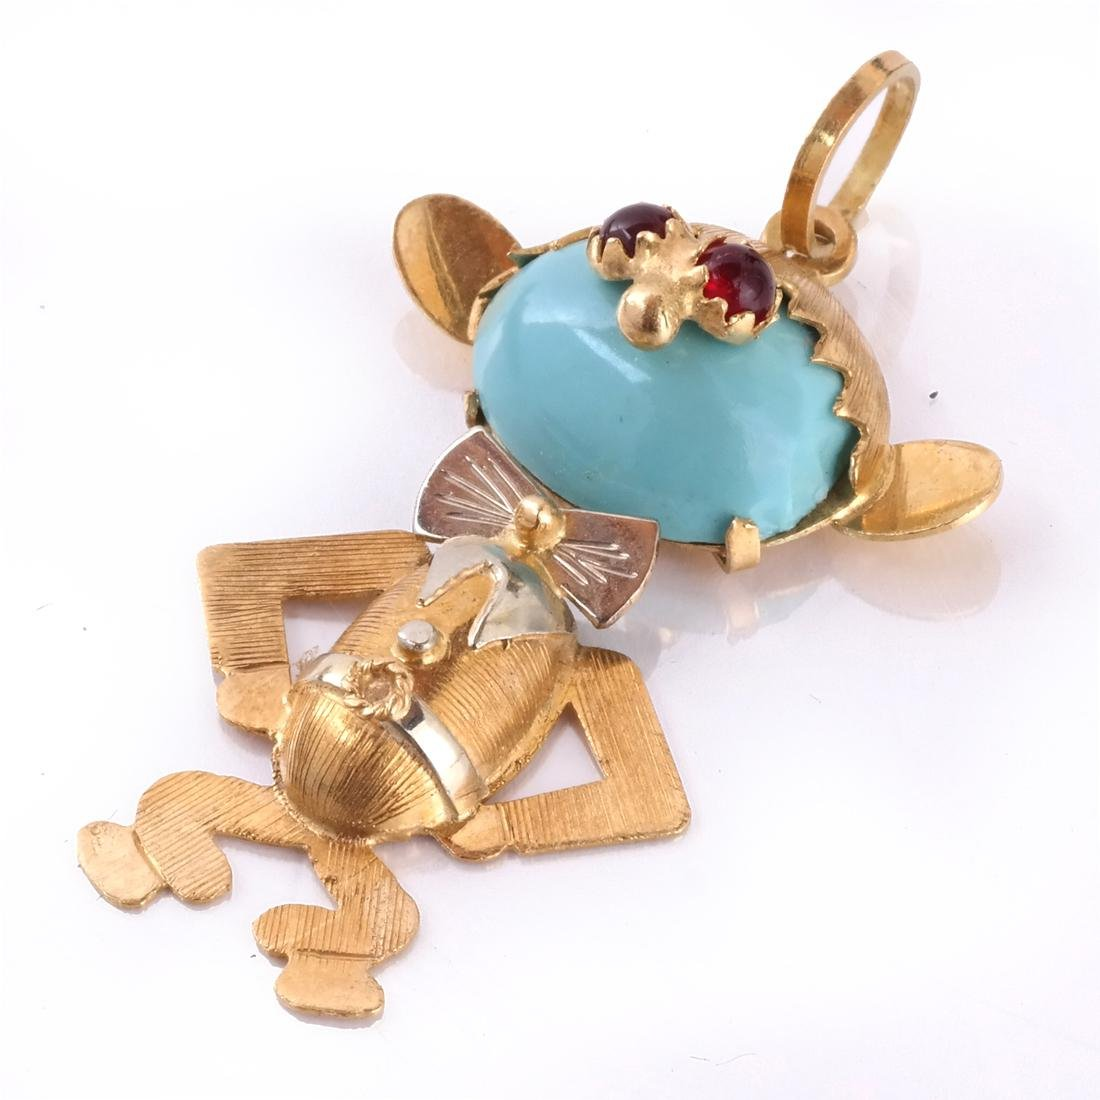 18k Charms, Lot of 2 - 2